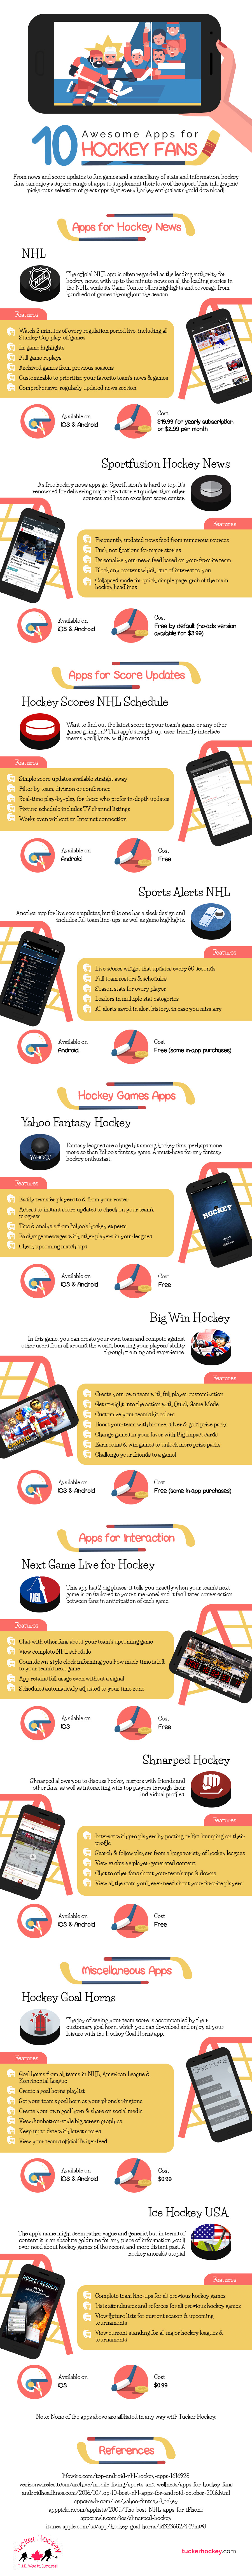 10 Awesome Apps for Hockey Fans